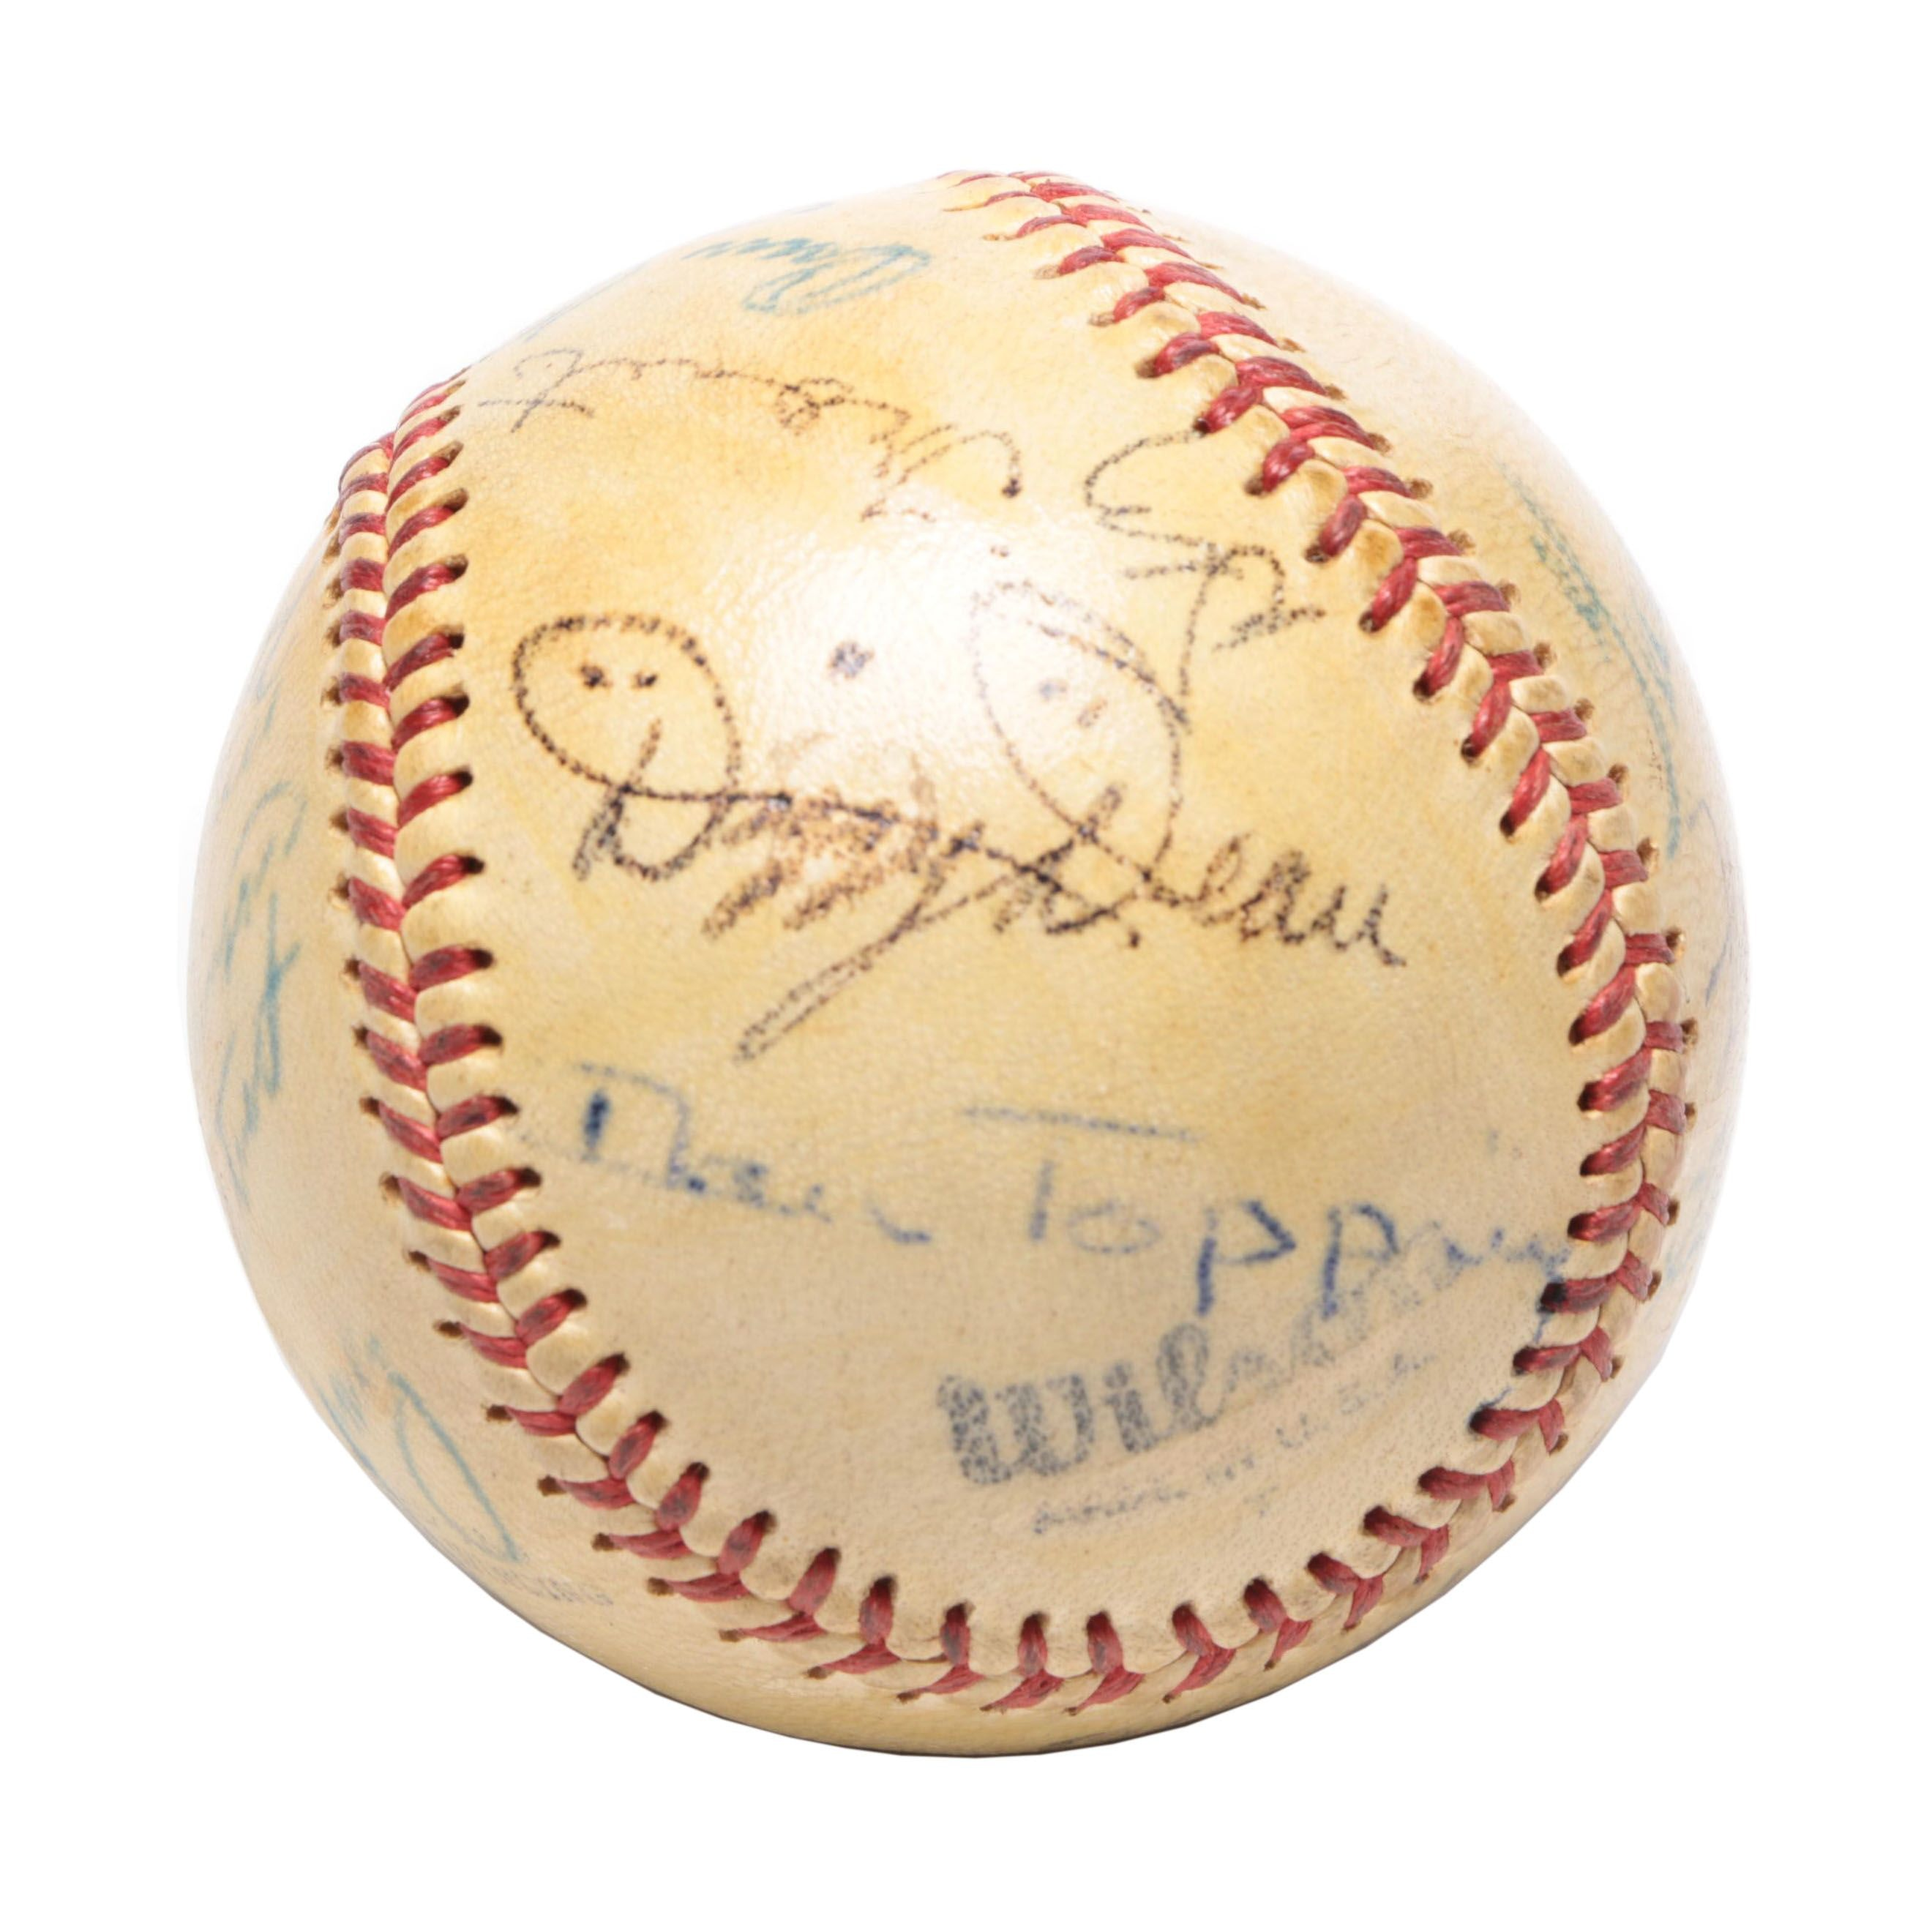 Dizzy Dean, Lefty Gomez and Others Signed Baseball, Circa 1940s  JSA Full Letter